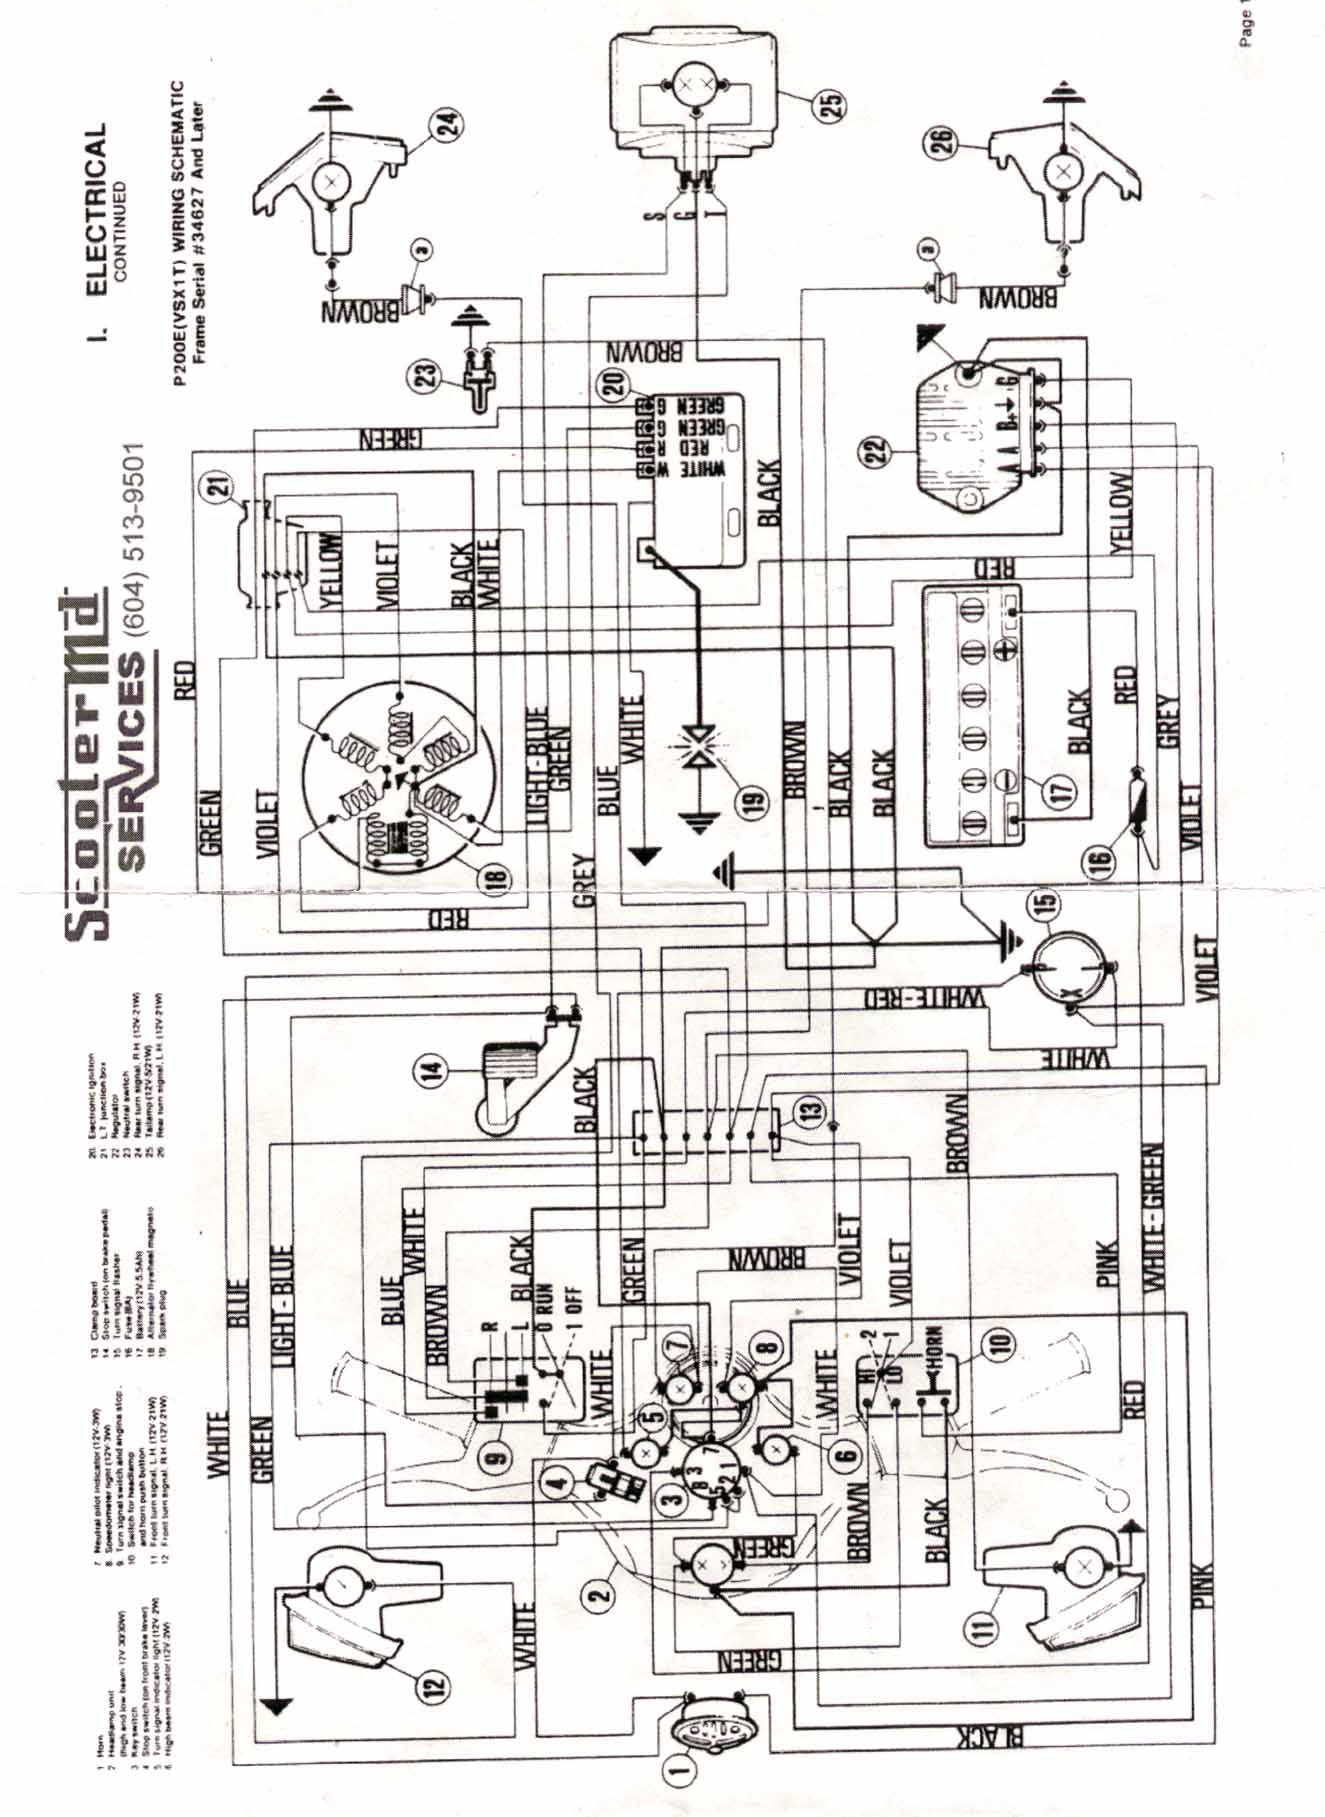 p200diag2 vespa p series maintenance & repair vespa p125x wiring diagram at eliteediting.co